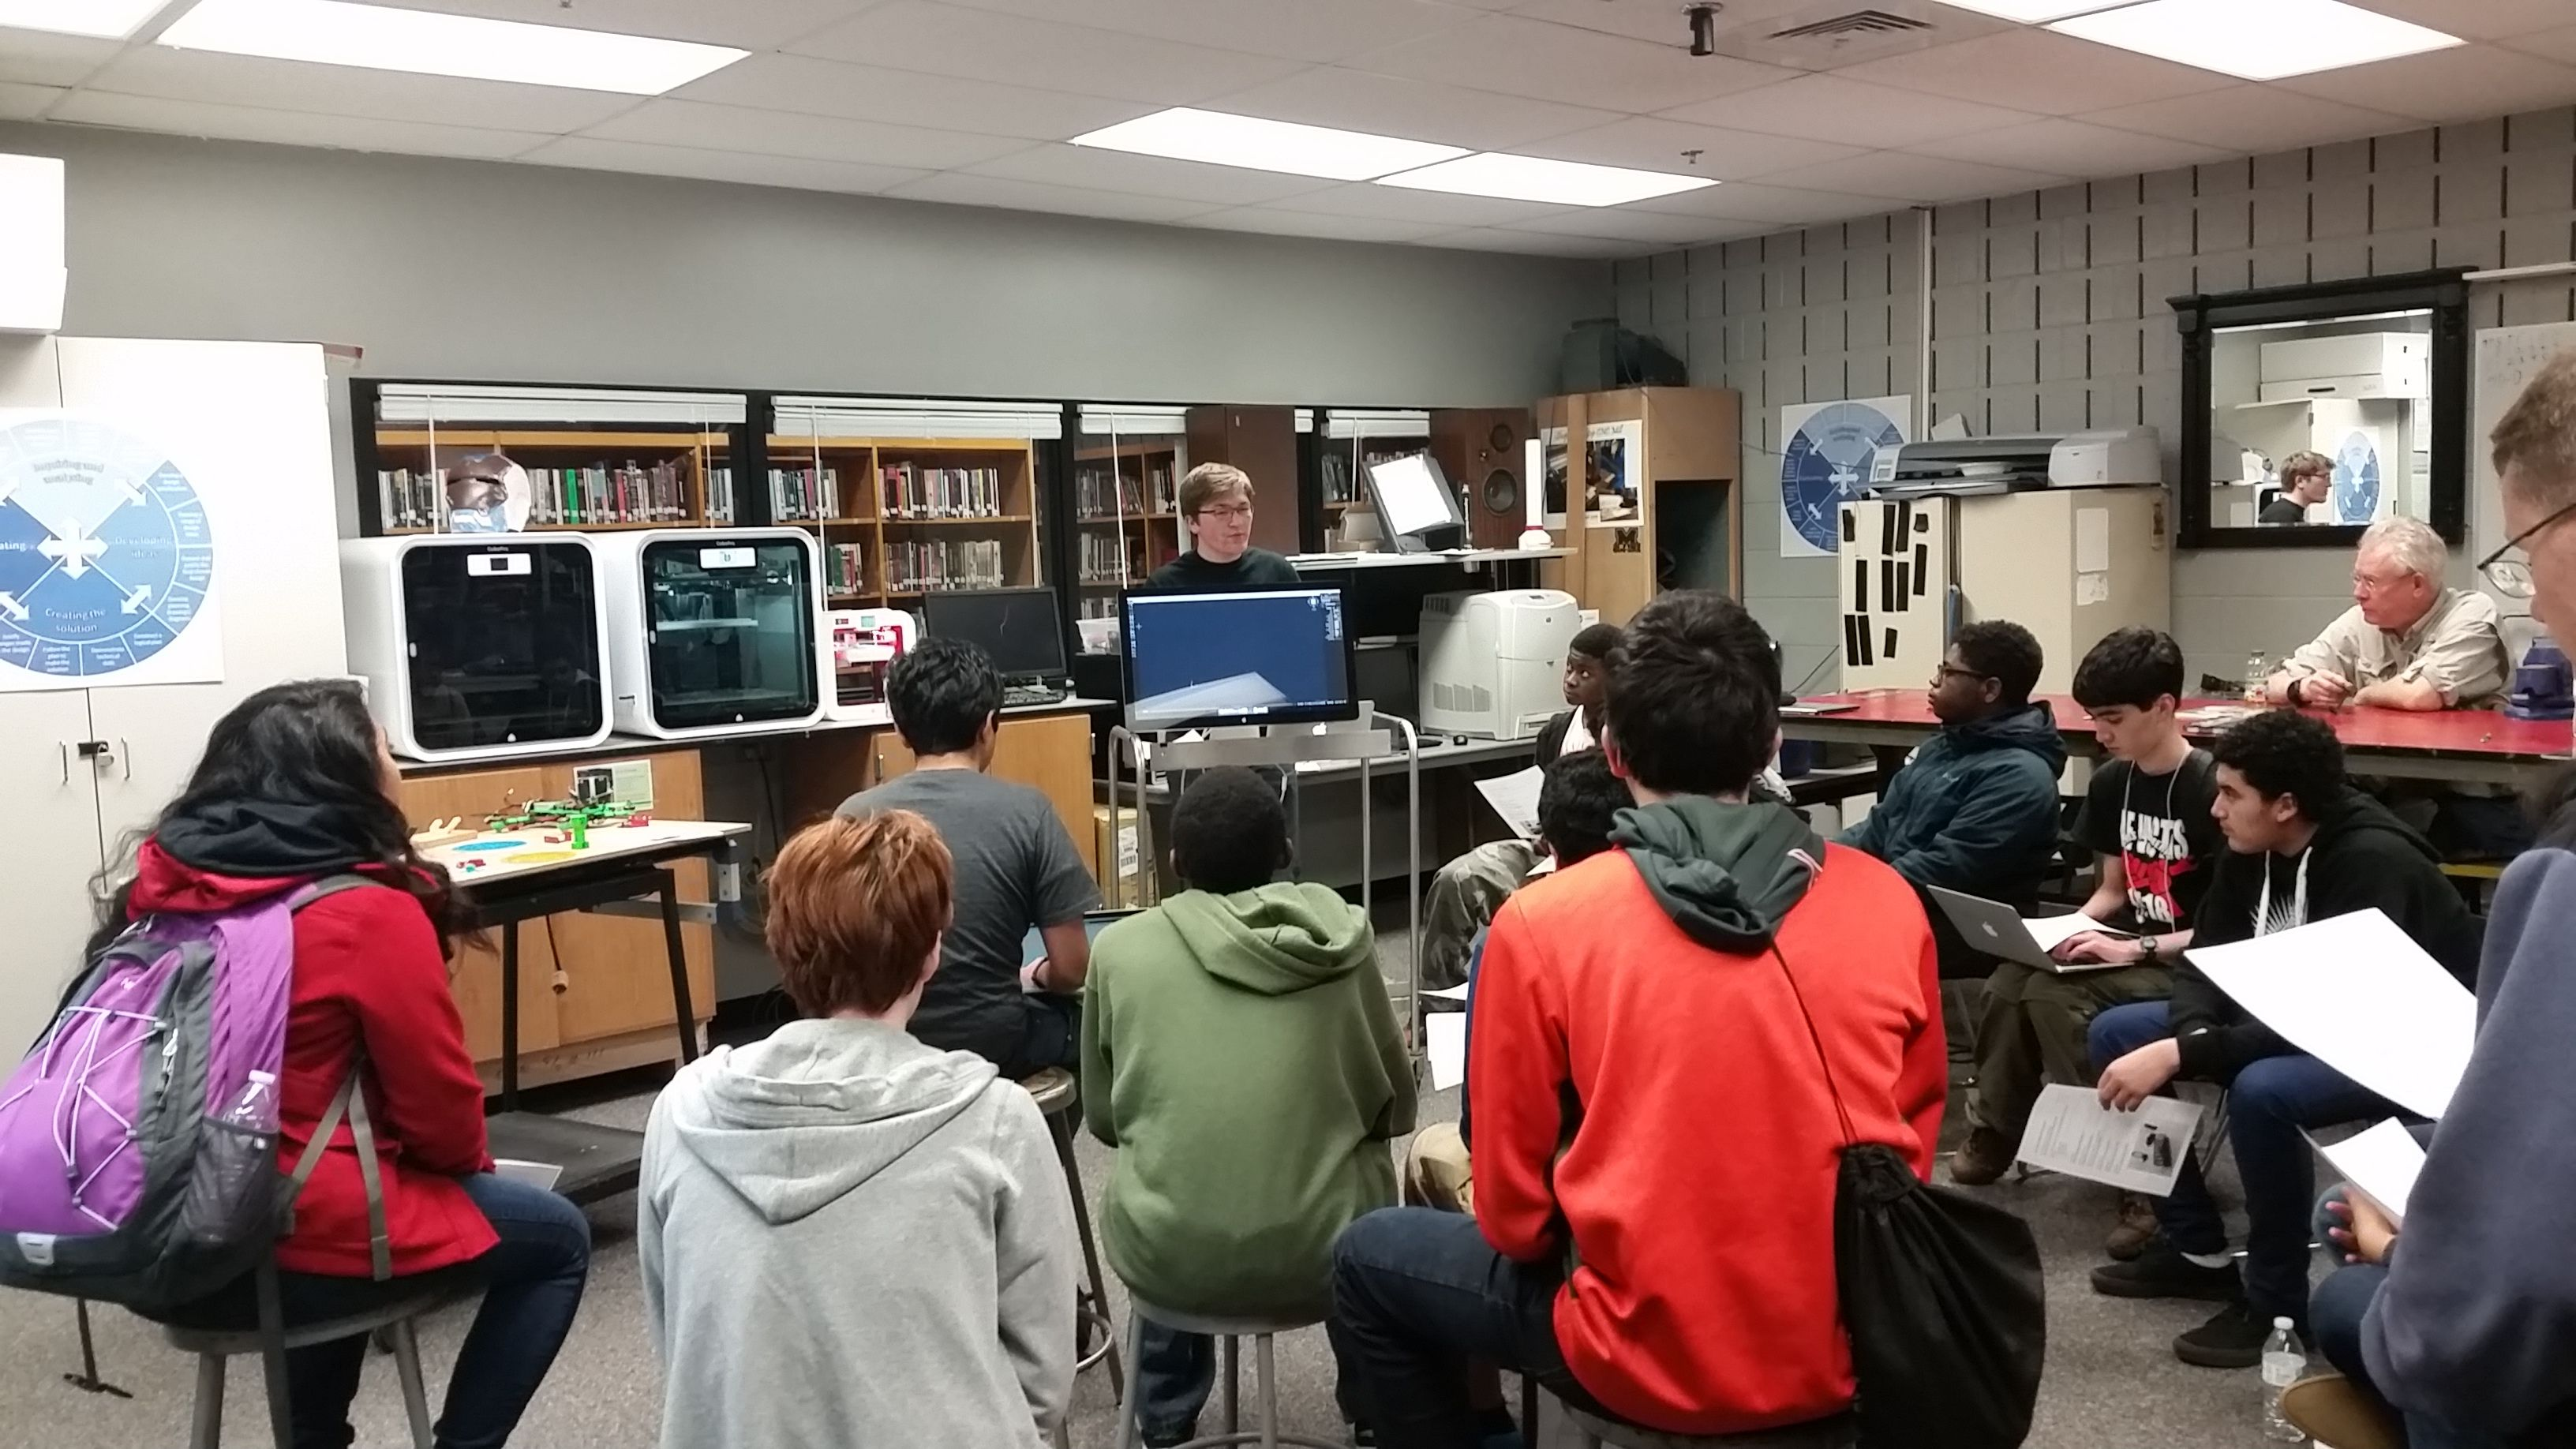 Students attending a 2015 workshop in the Makerspace.